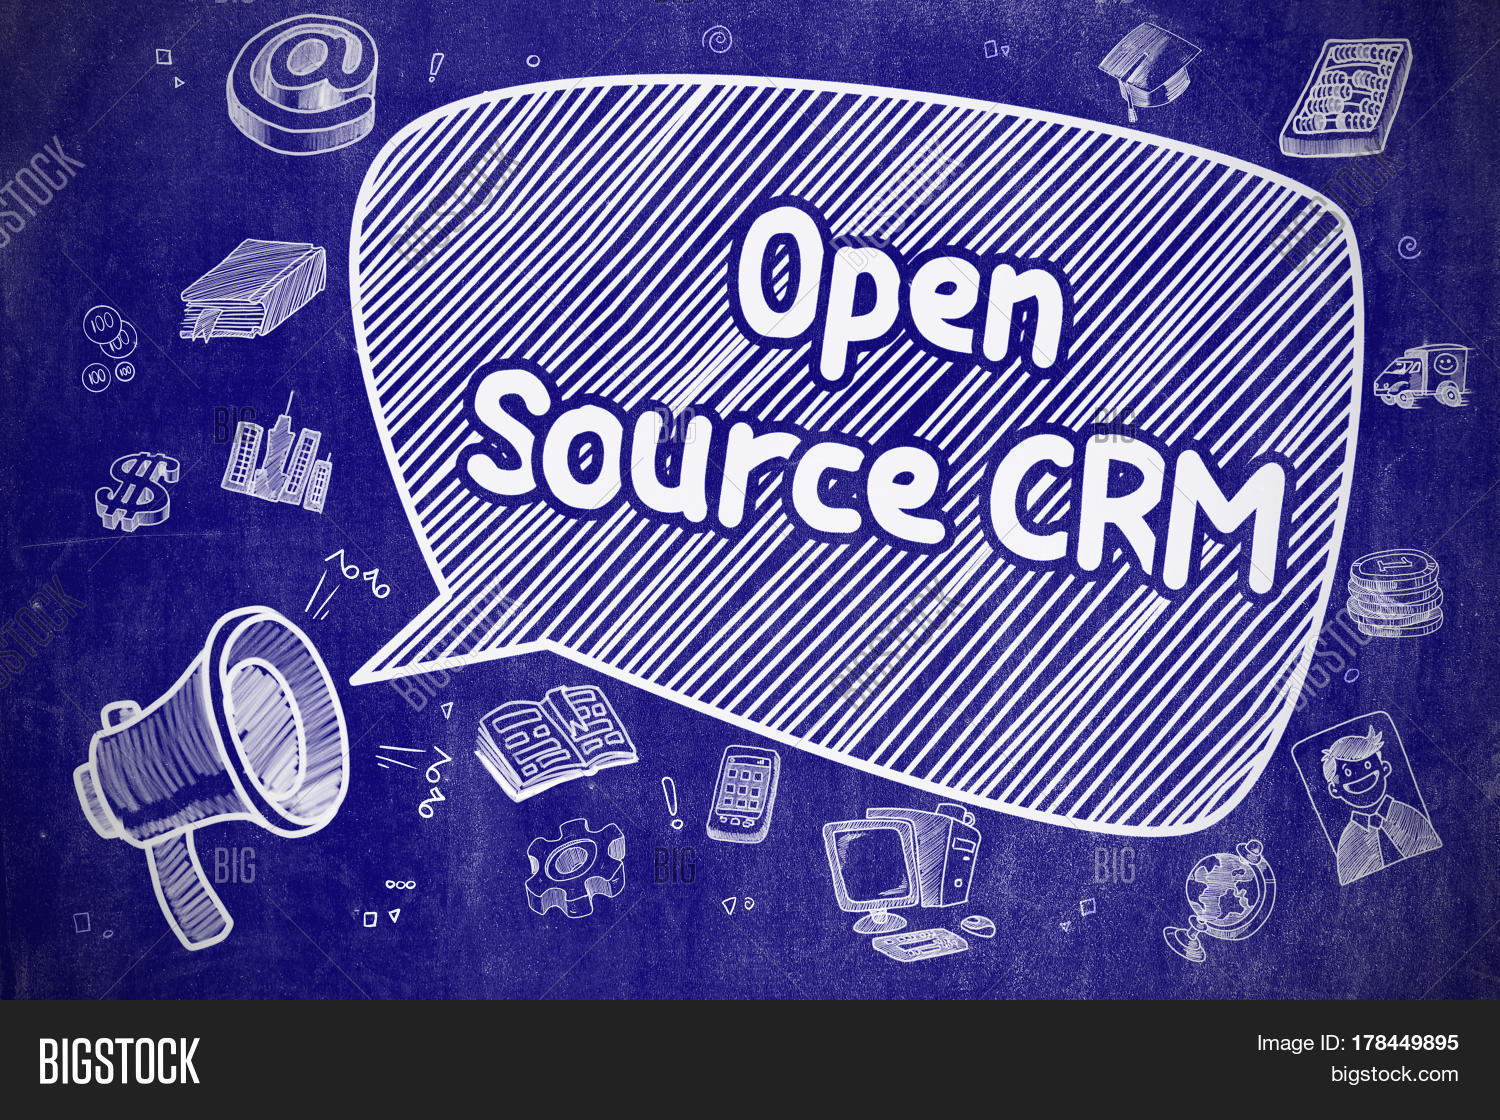 Open Source CRM On Image & Photo (Free Trial) | Bigstock